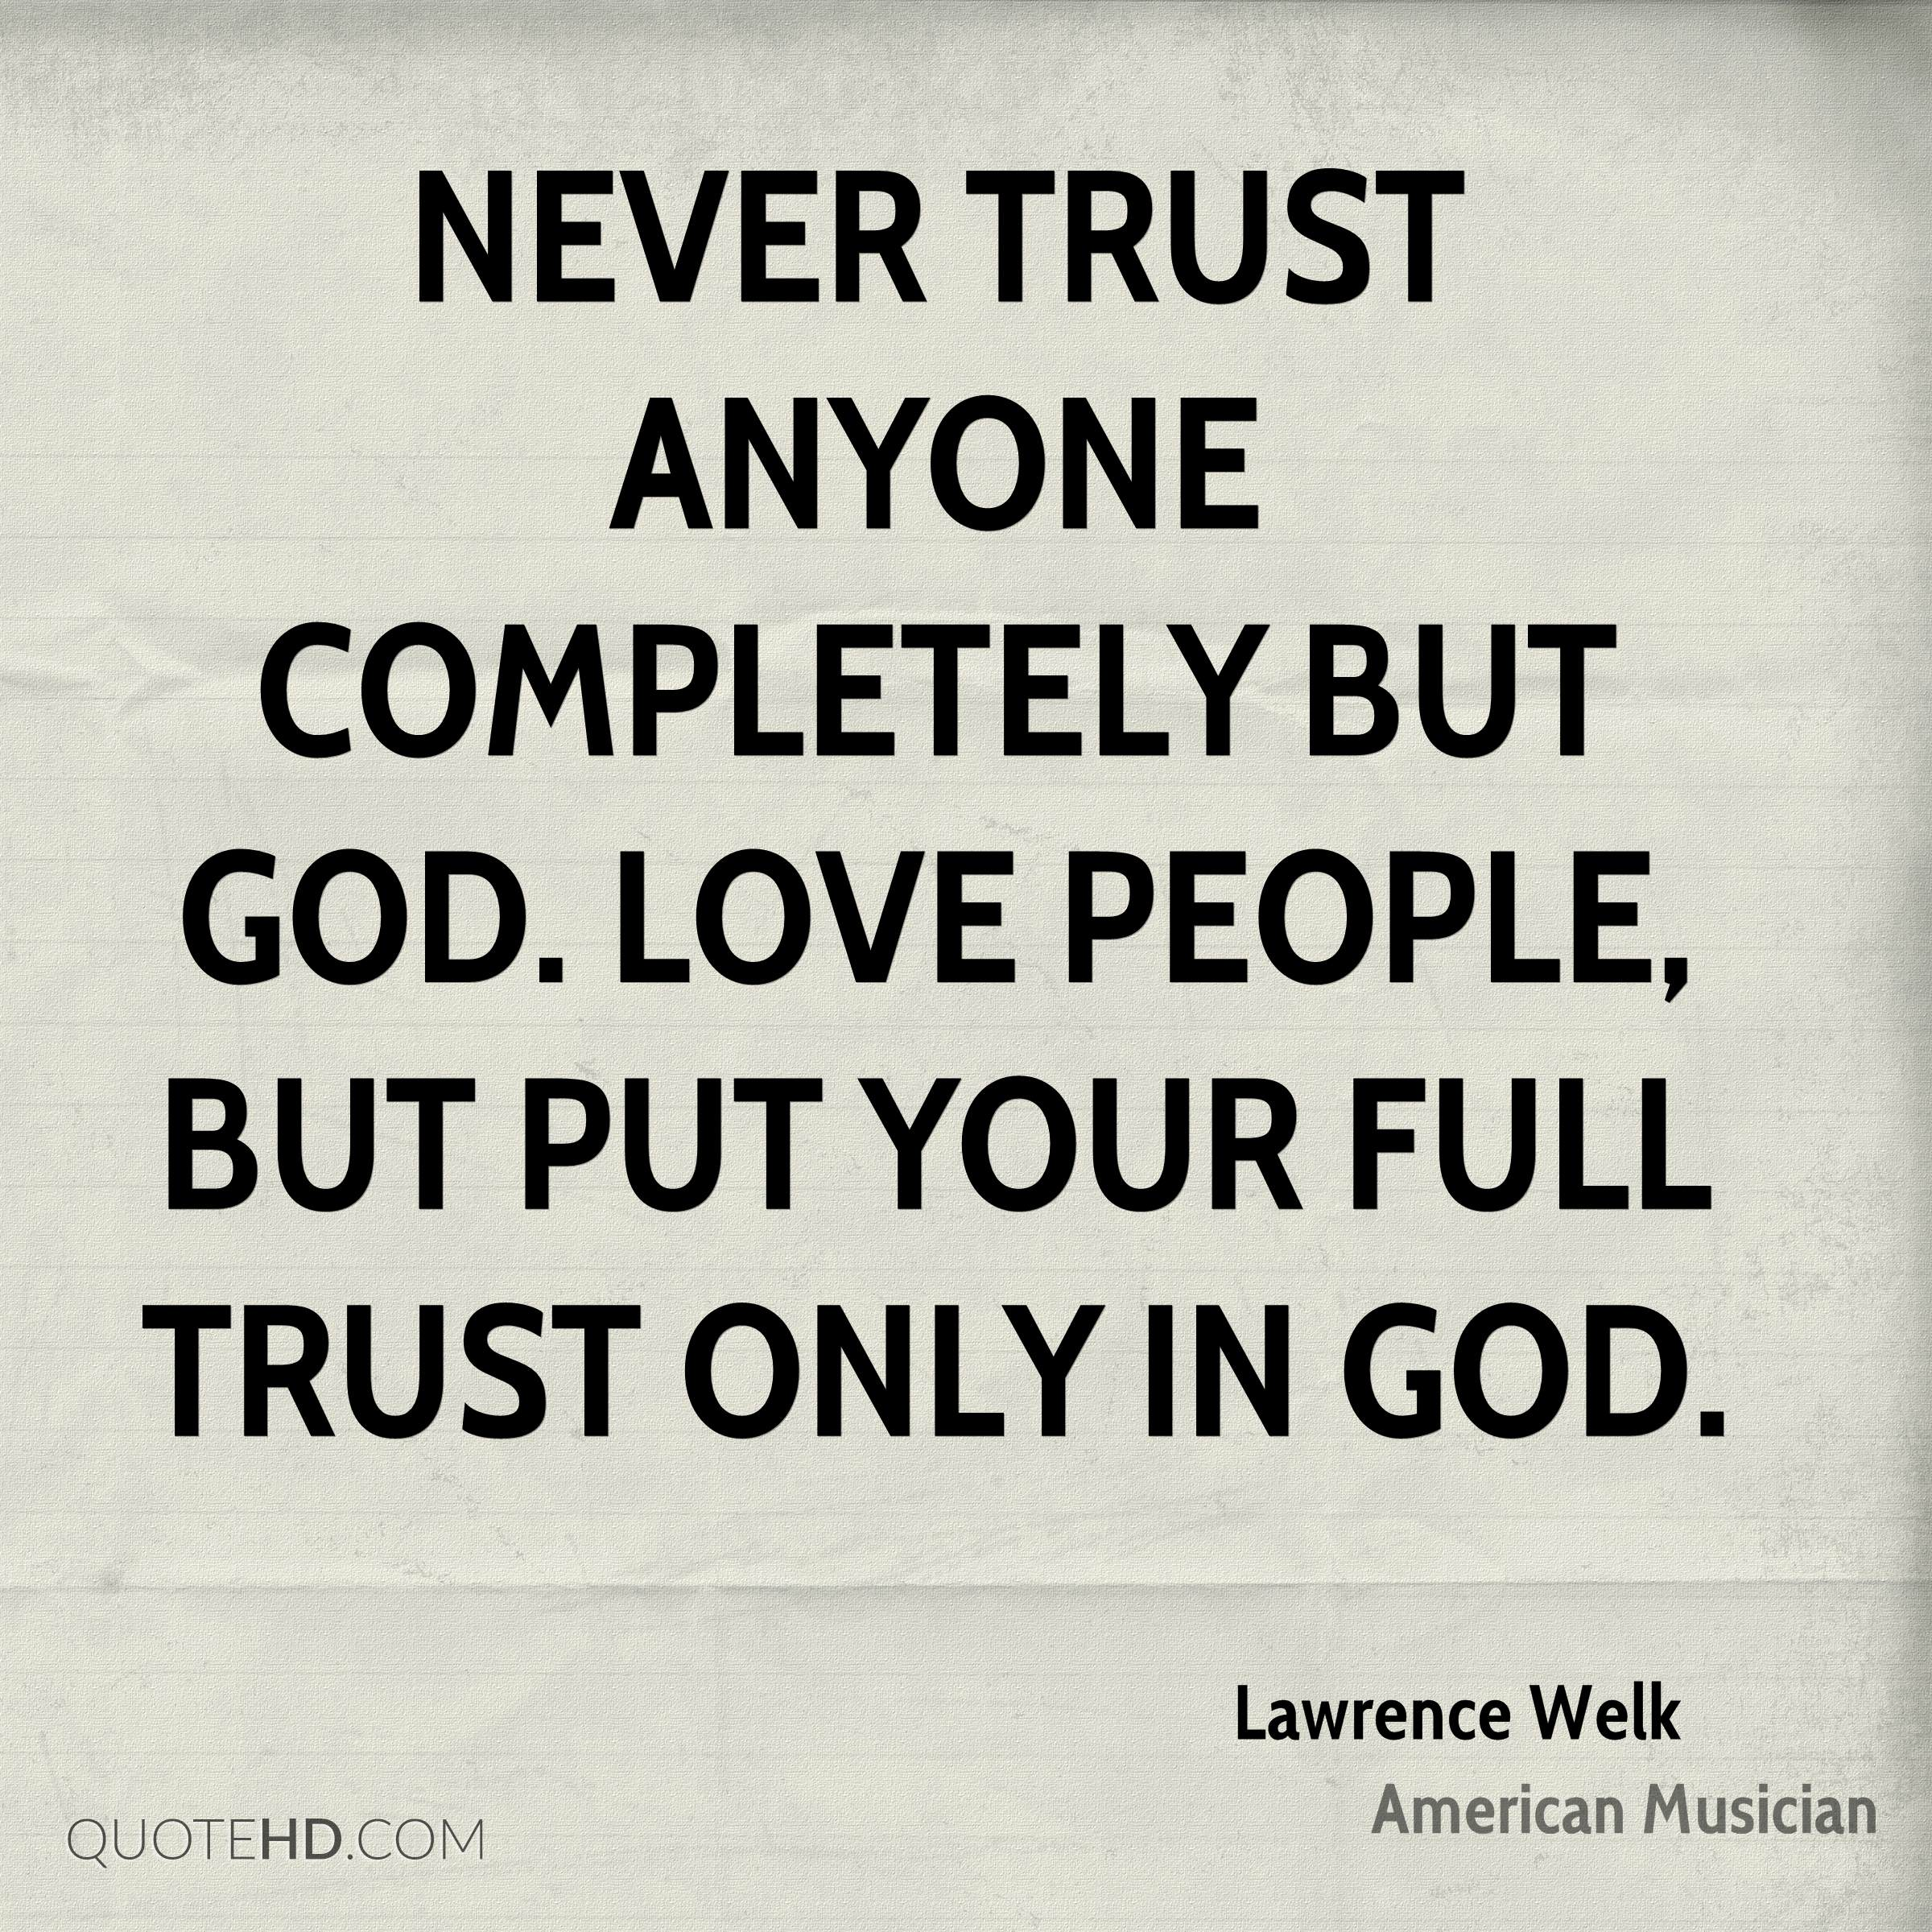 I Will Never Trust Anyone Again Quotes: Never Trust Anyone Quotes. QuotesGram